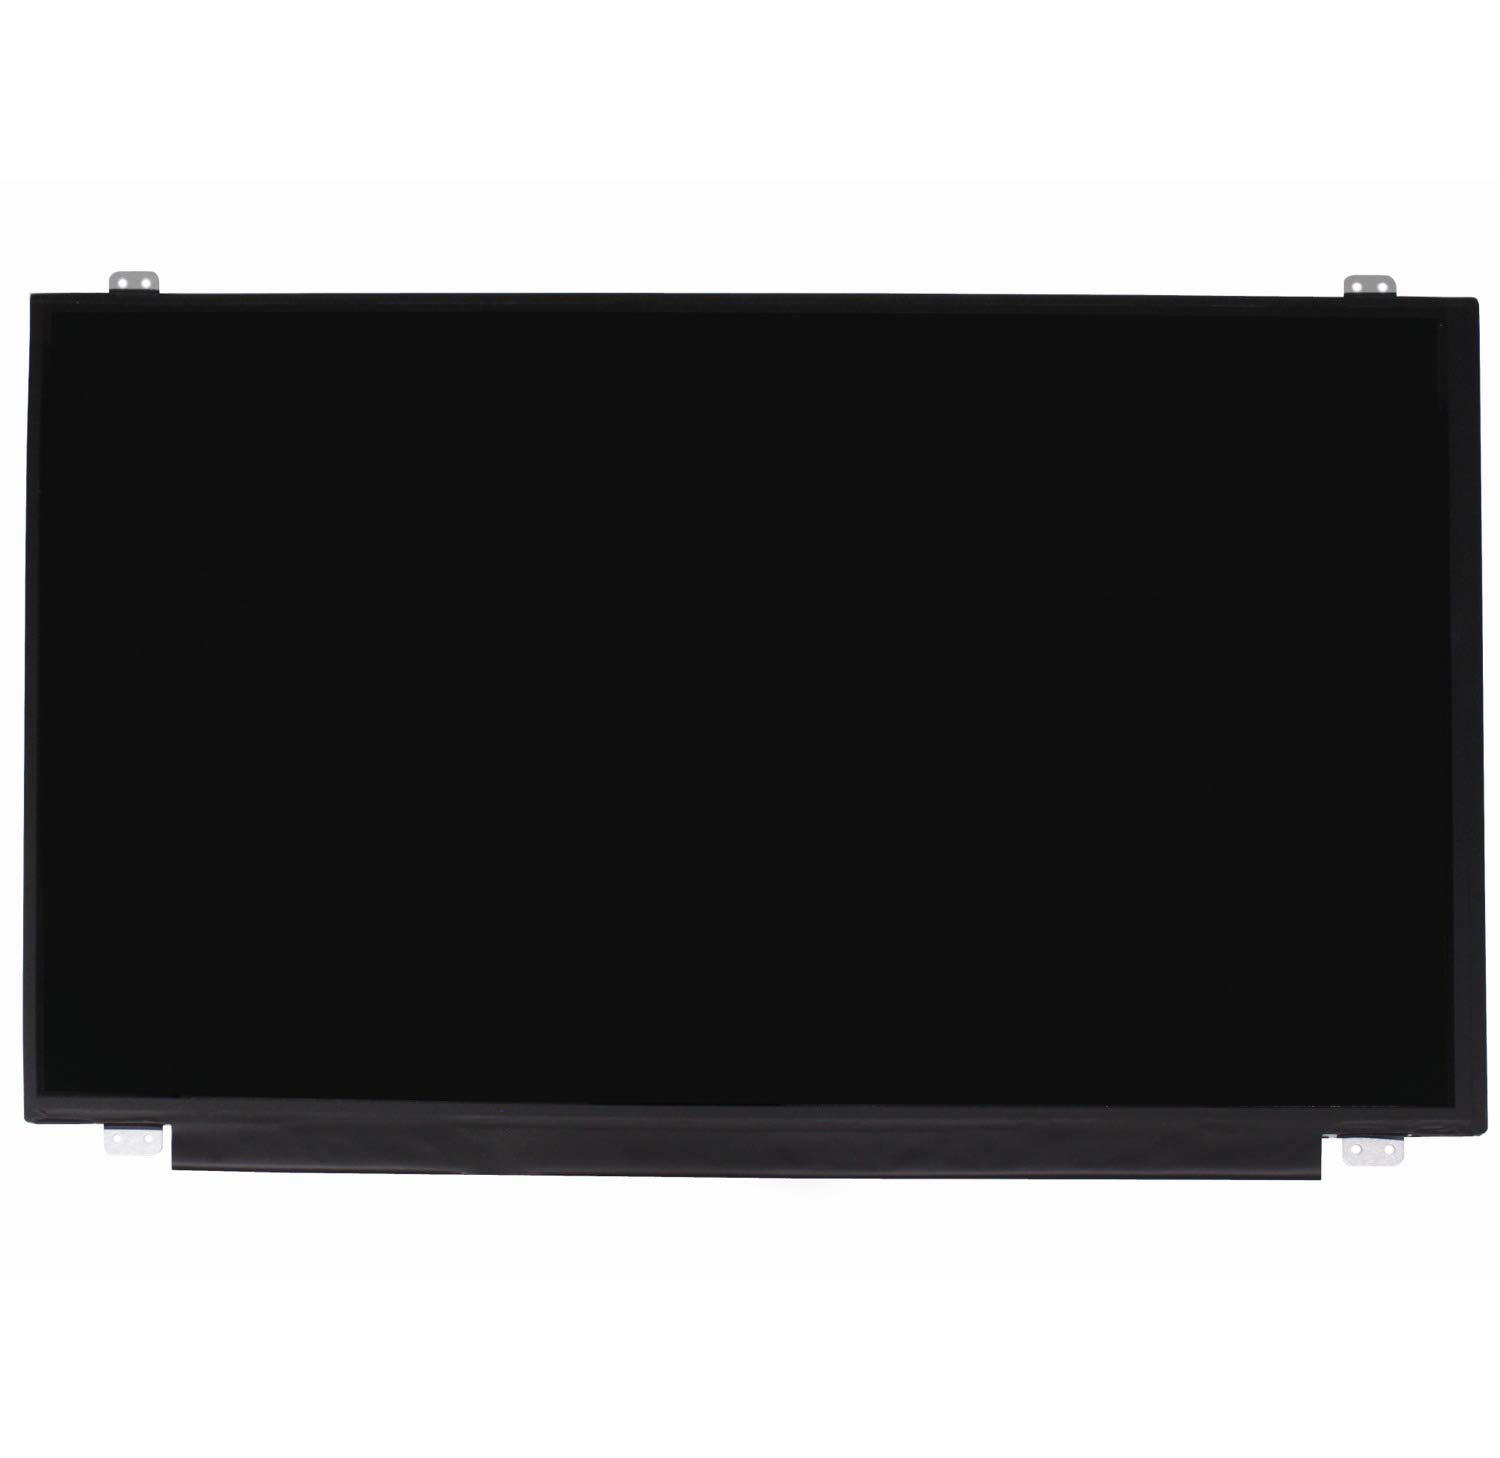 AJParts 15.6' Replacement Laptop LED LCD Screen for HP Pavilion 15-ac108na WXGA HD Razor Slim Display Panel Without Touch 30 Pin eDP for Sale